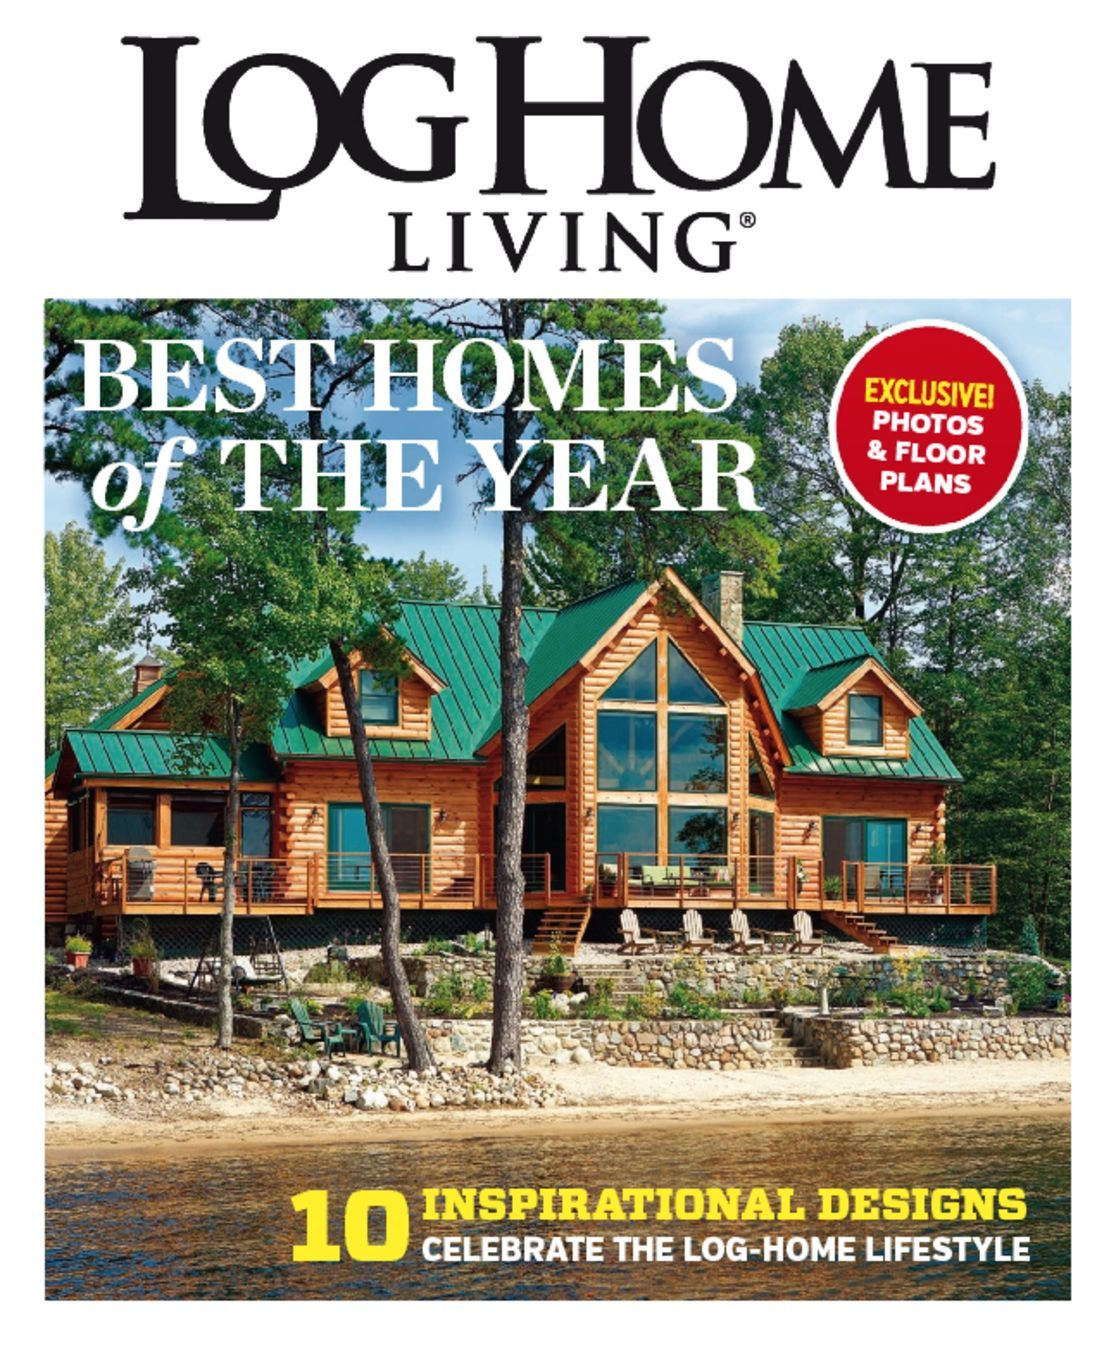 Log home living best of 2014 magazine digital for Home living magazines